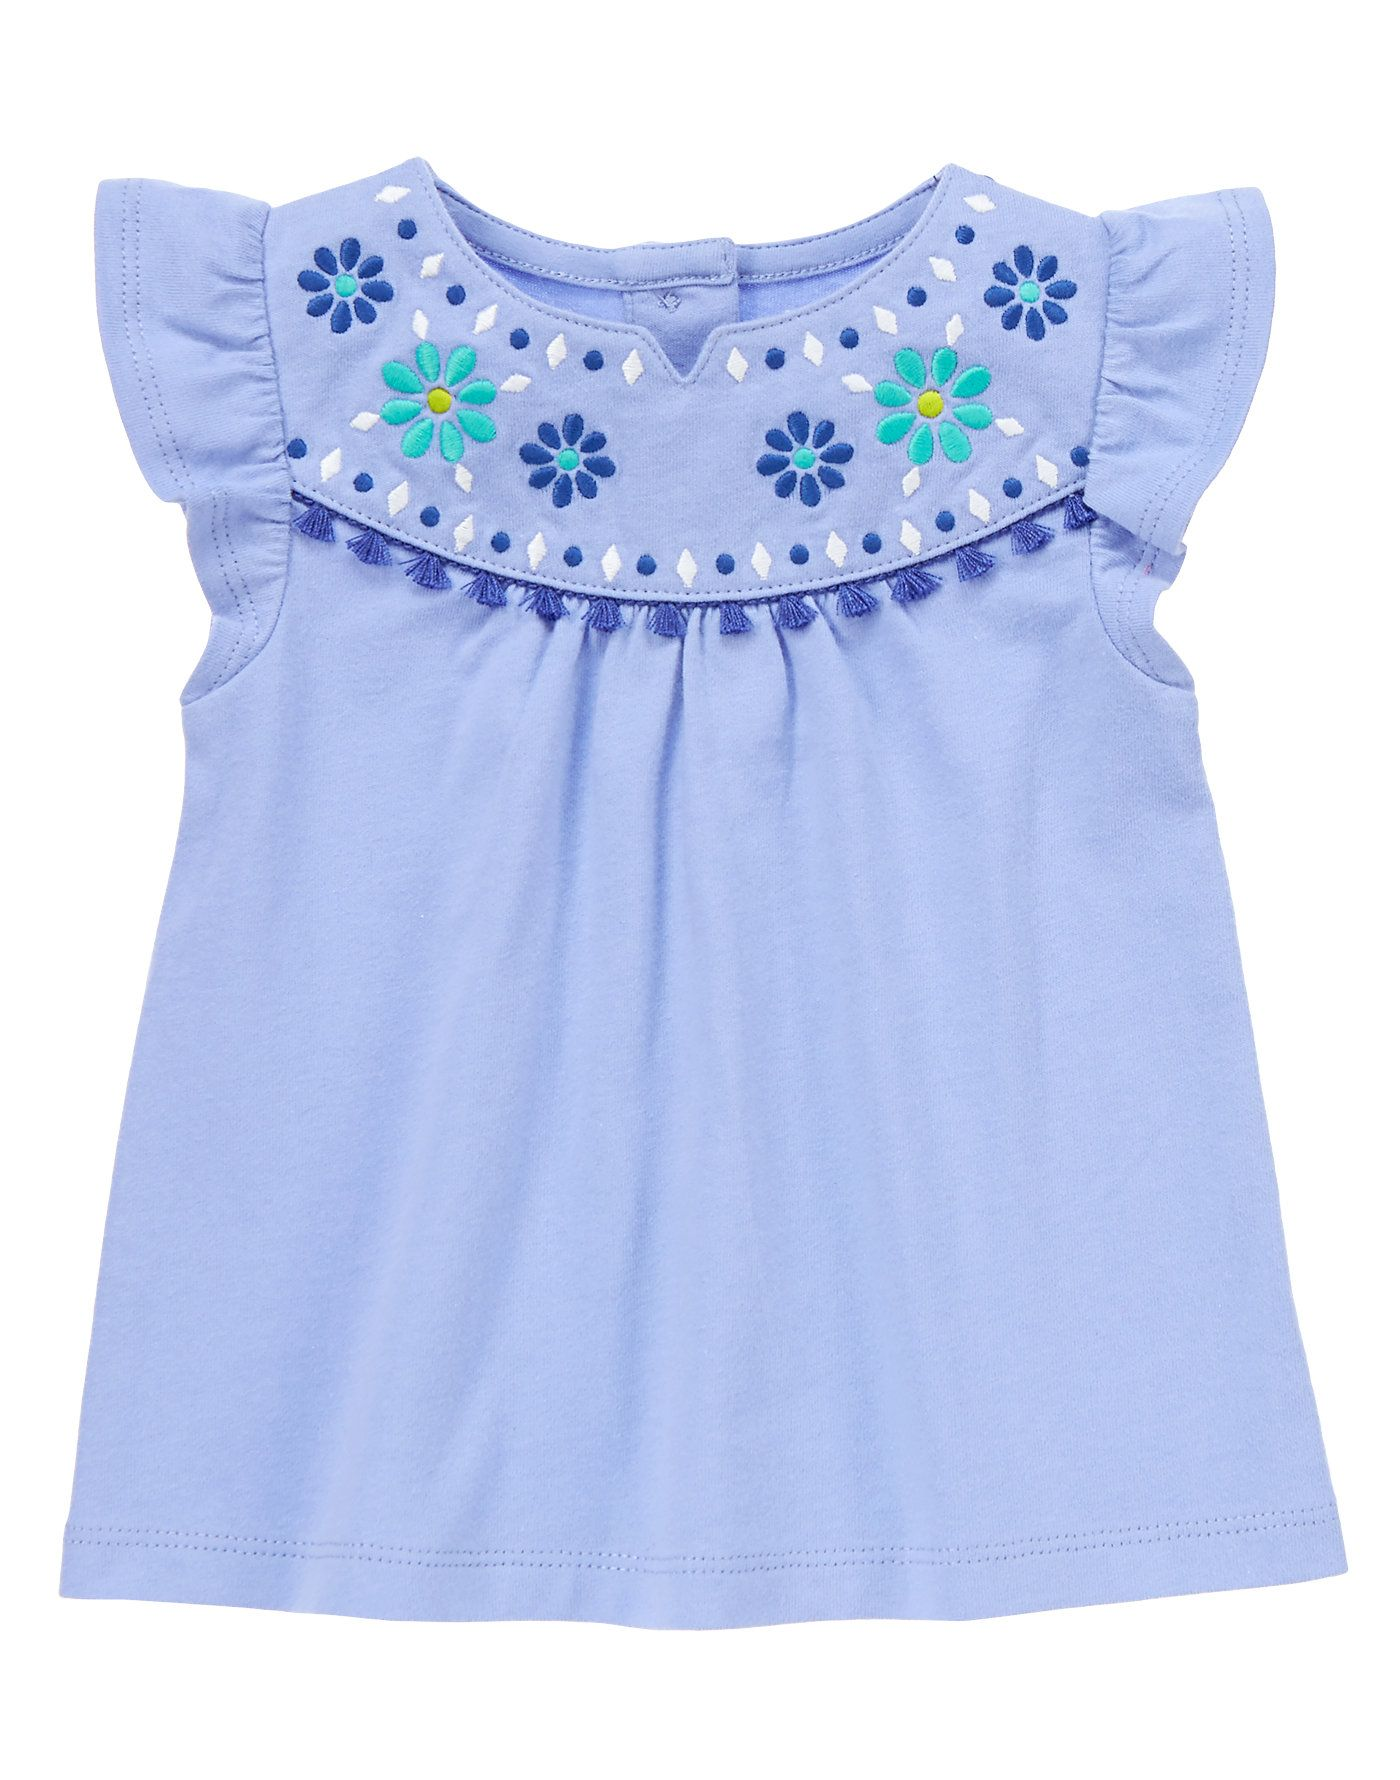 dfd7fcd304fb Embroidered Tassel Top at Gymboree Collection Name  Safari Smiles ...